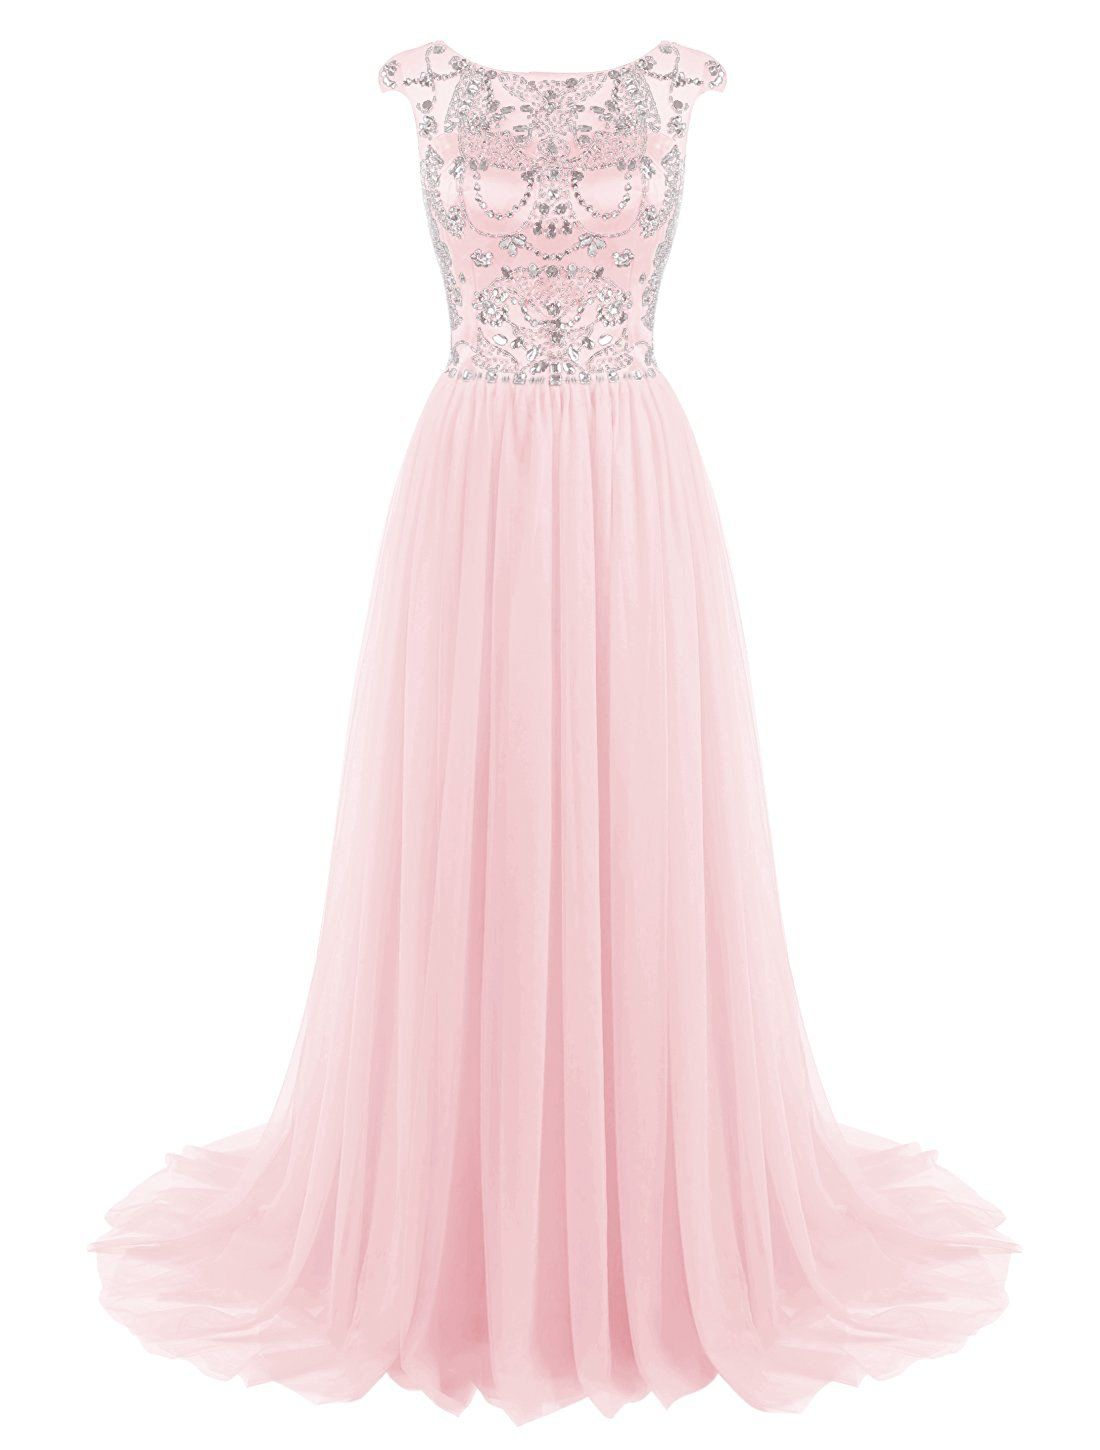 004bd5f5362 Tideclothes Long Beads Prom Dress Tulle Cap Sleeves Evening Dress at Amazon  Women s Clothing store